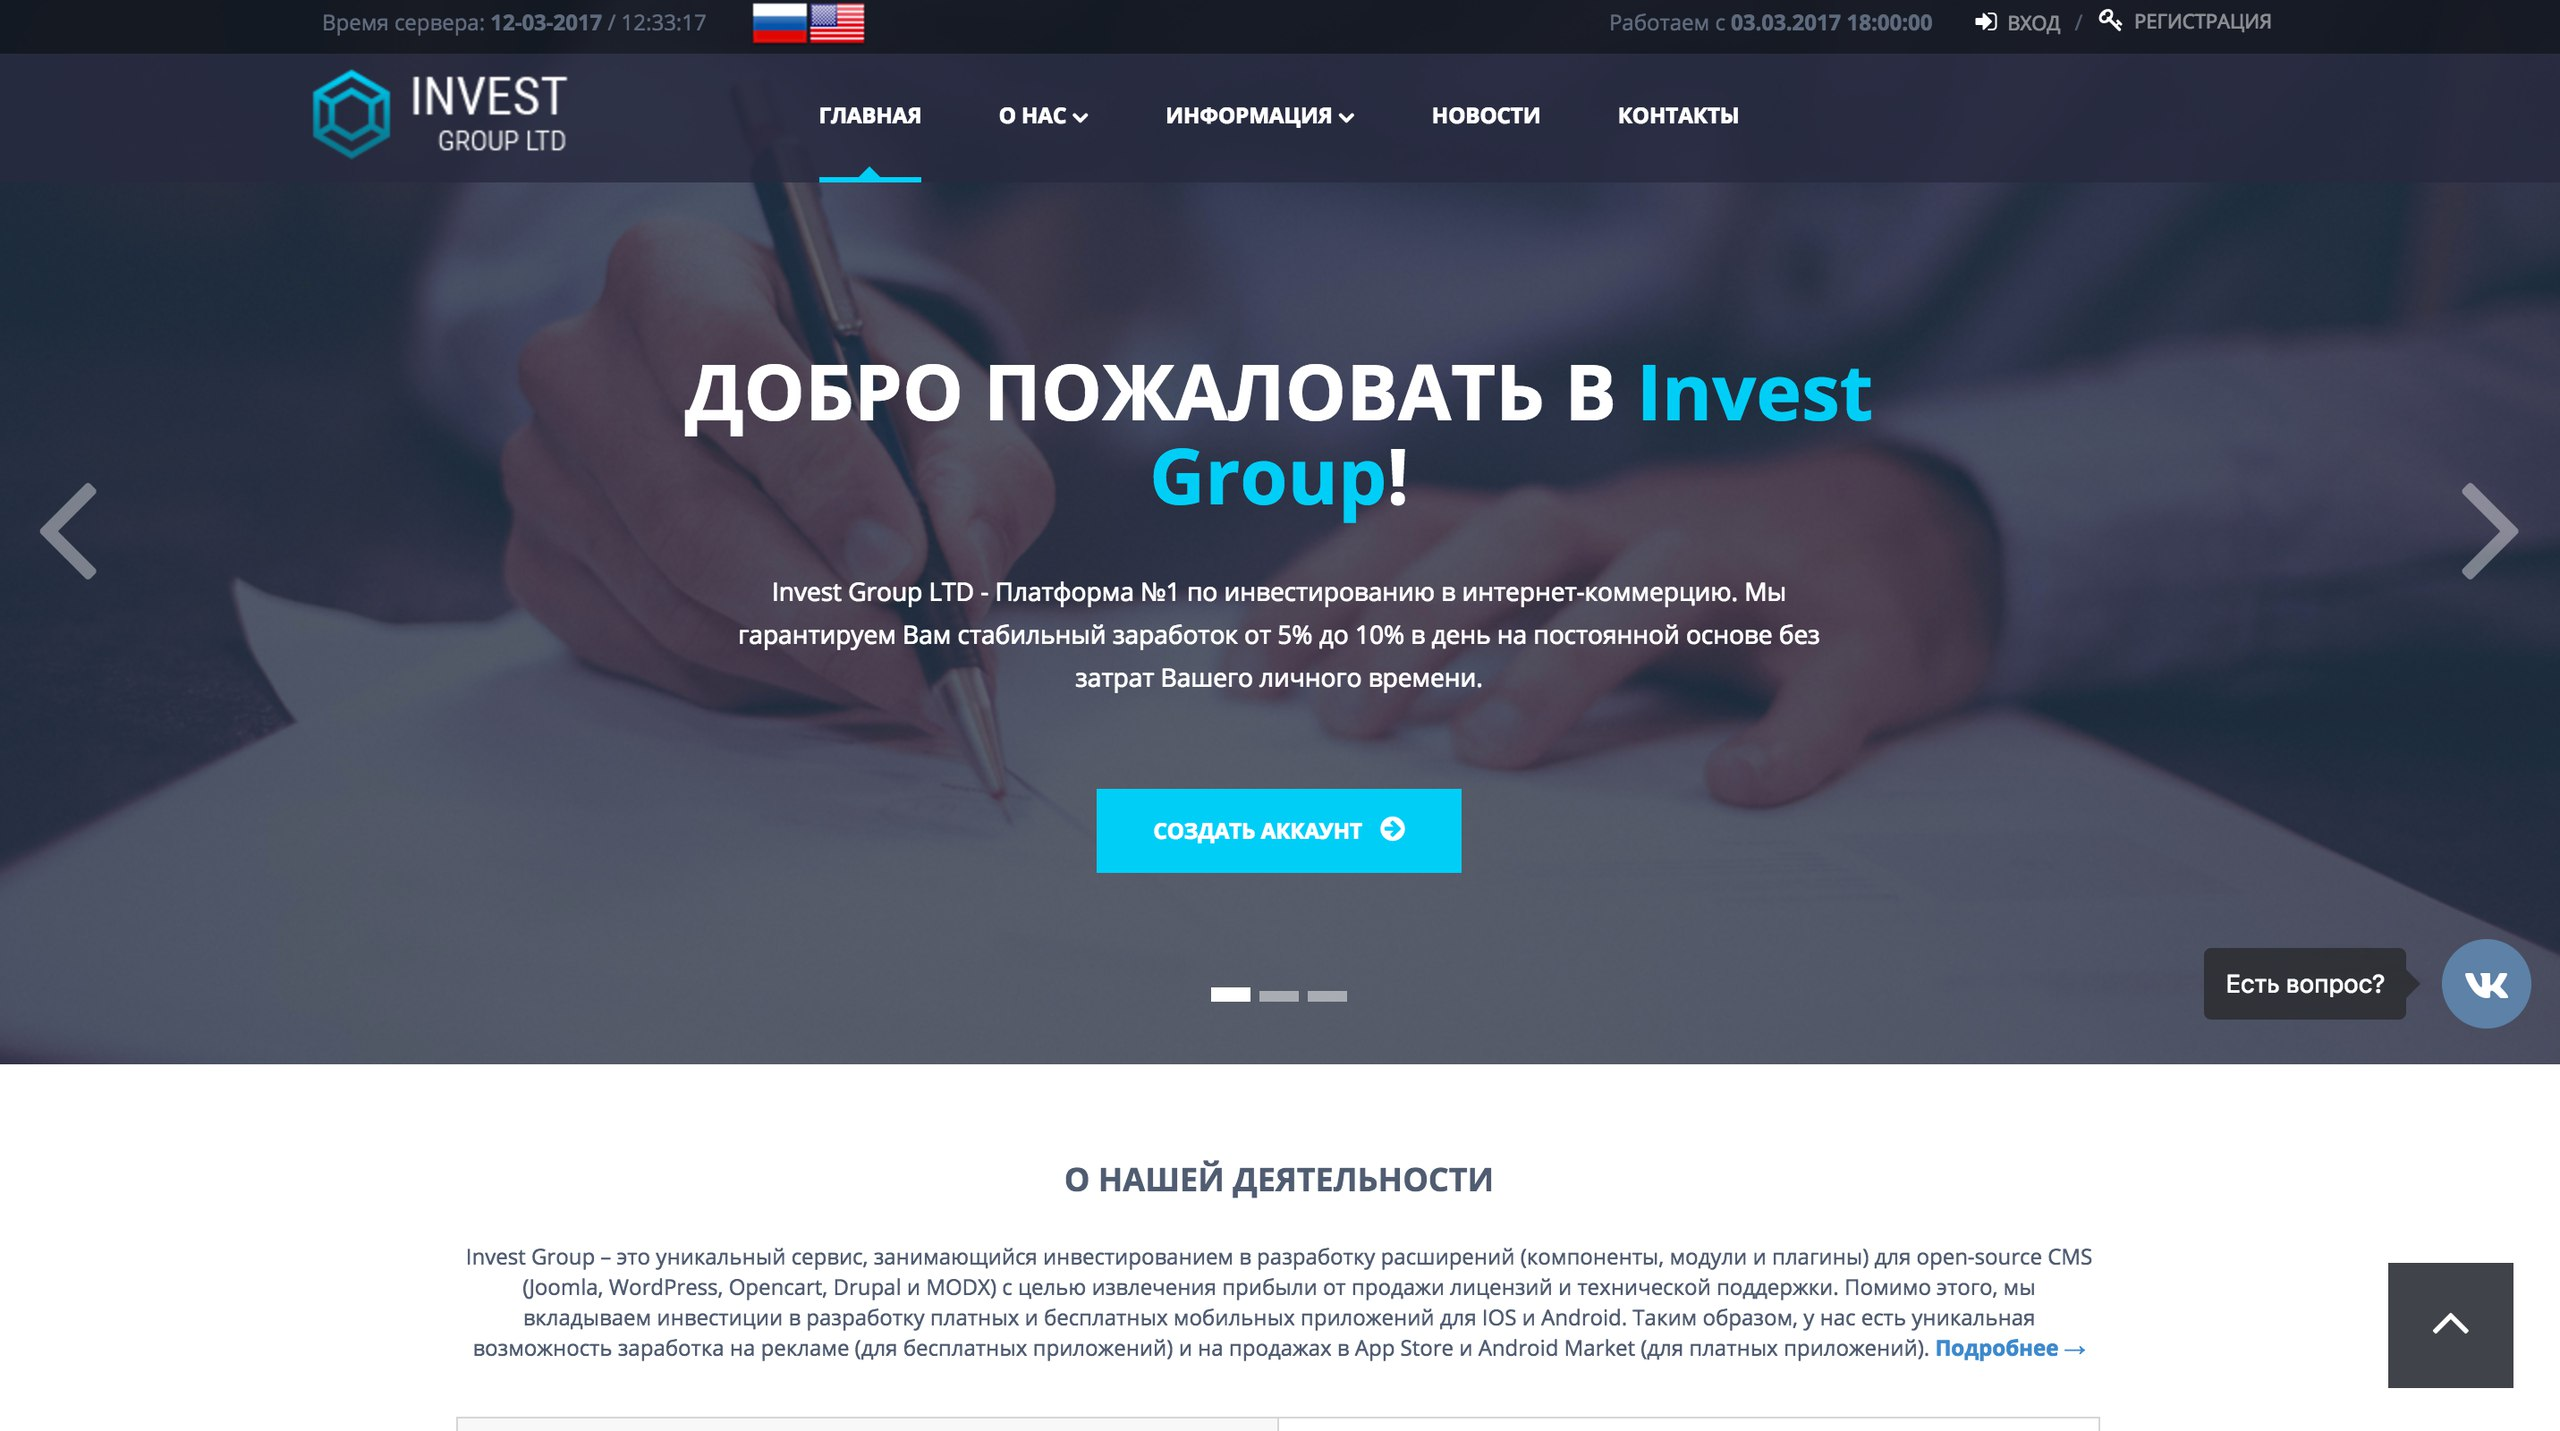 Invest Group Ltd